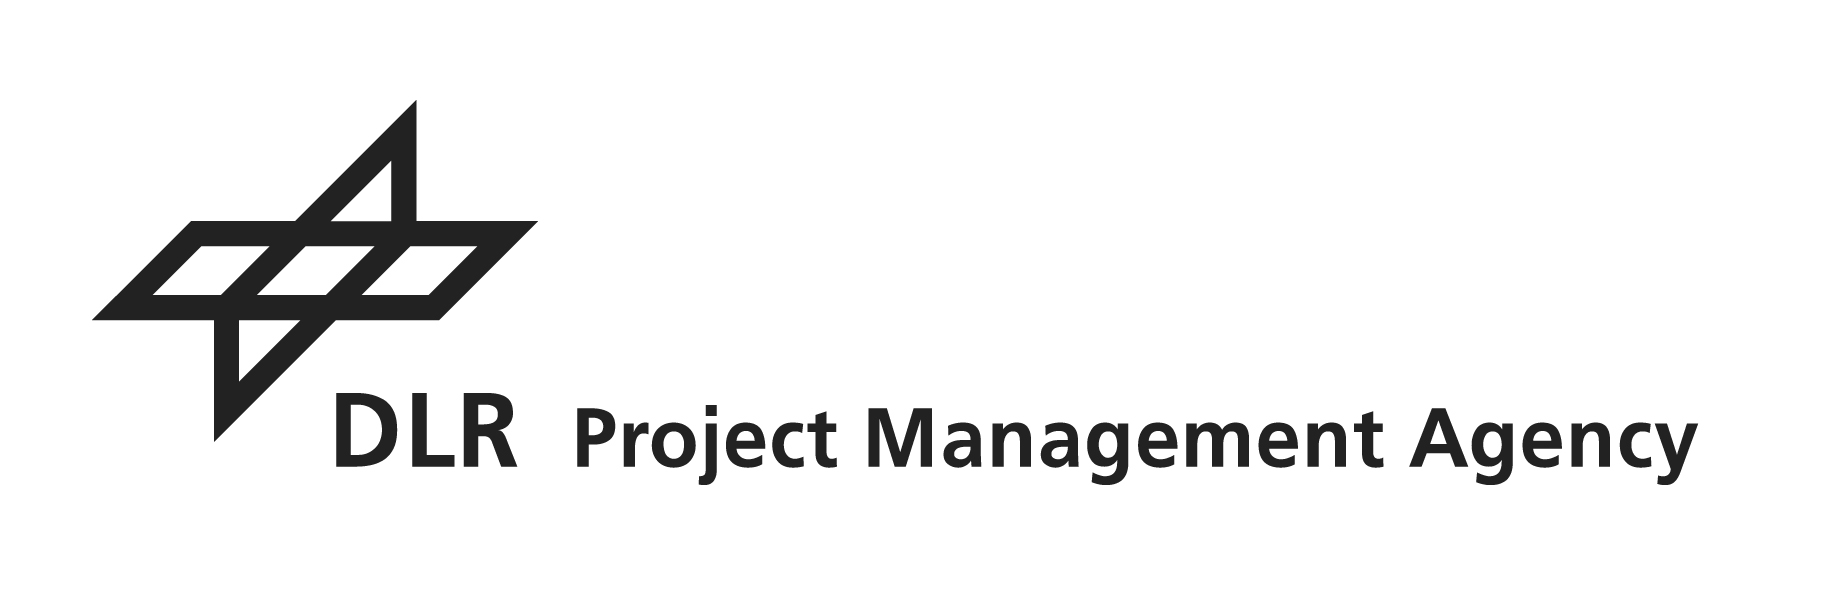 DLR Project Management Agency